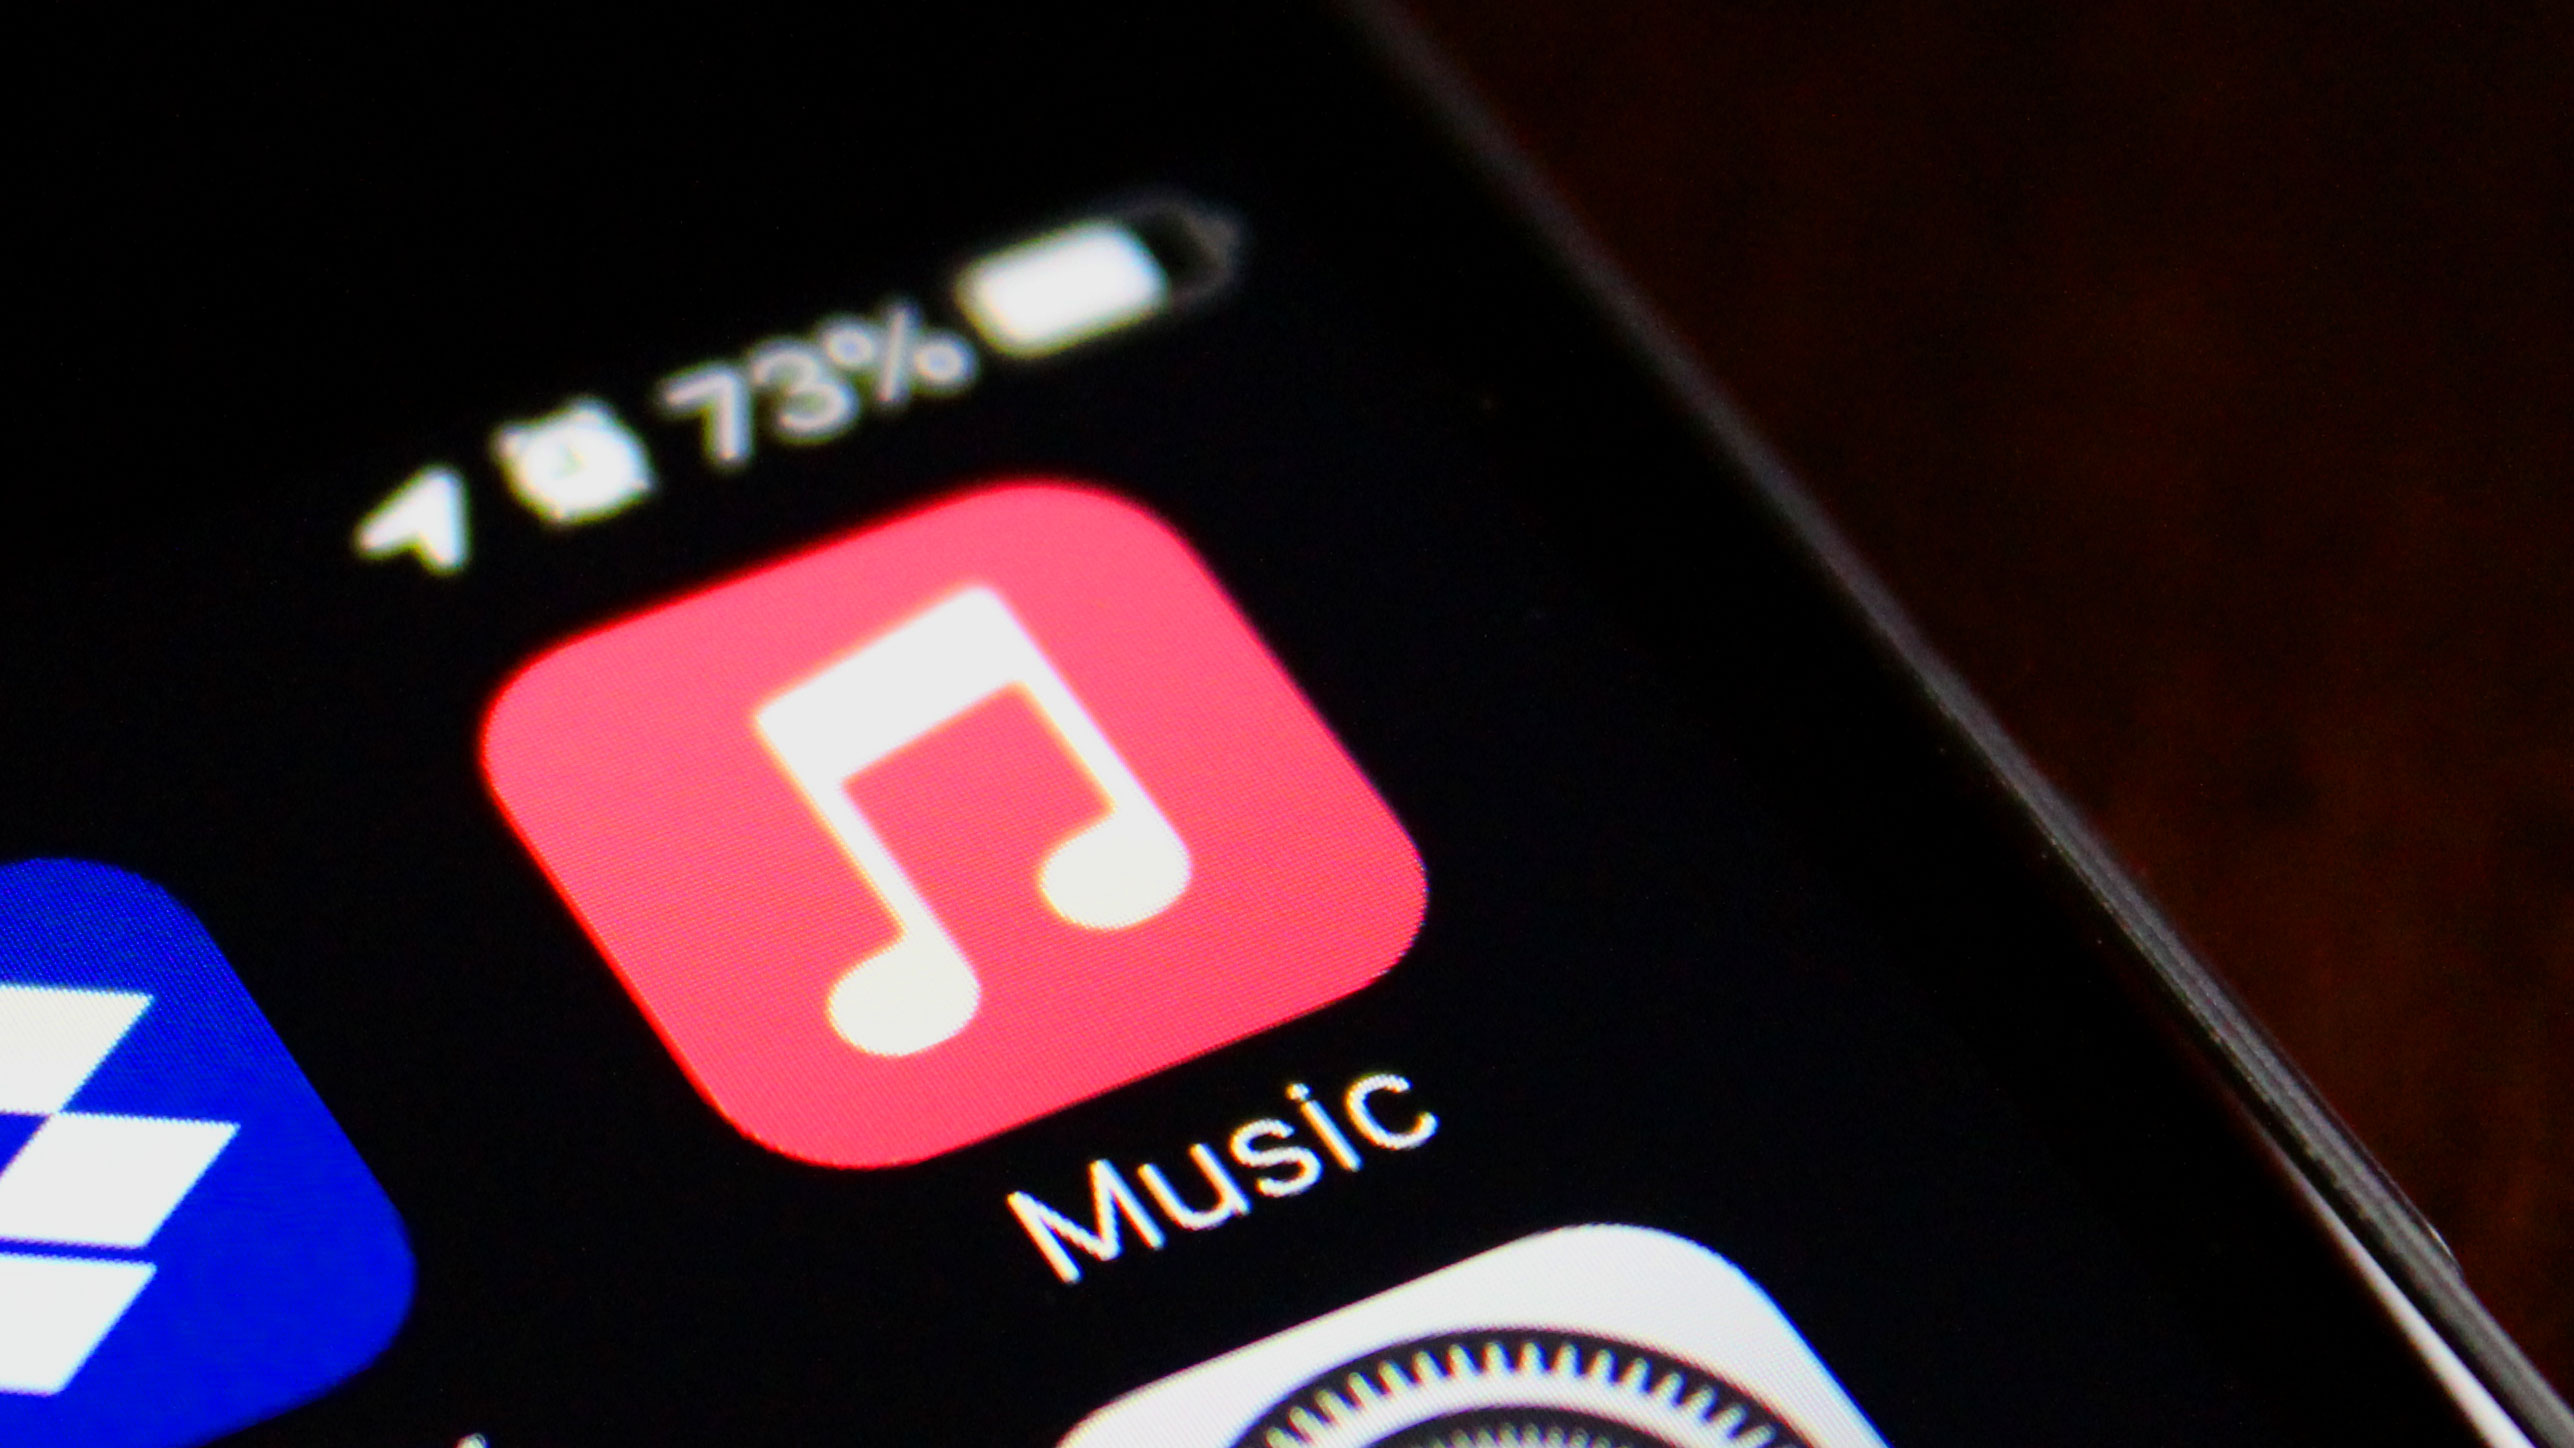 techcrunch.com - Brian Heater - Apple Music streaming revenue detailed in letter to artists